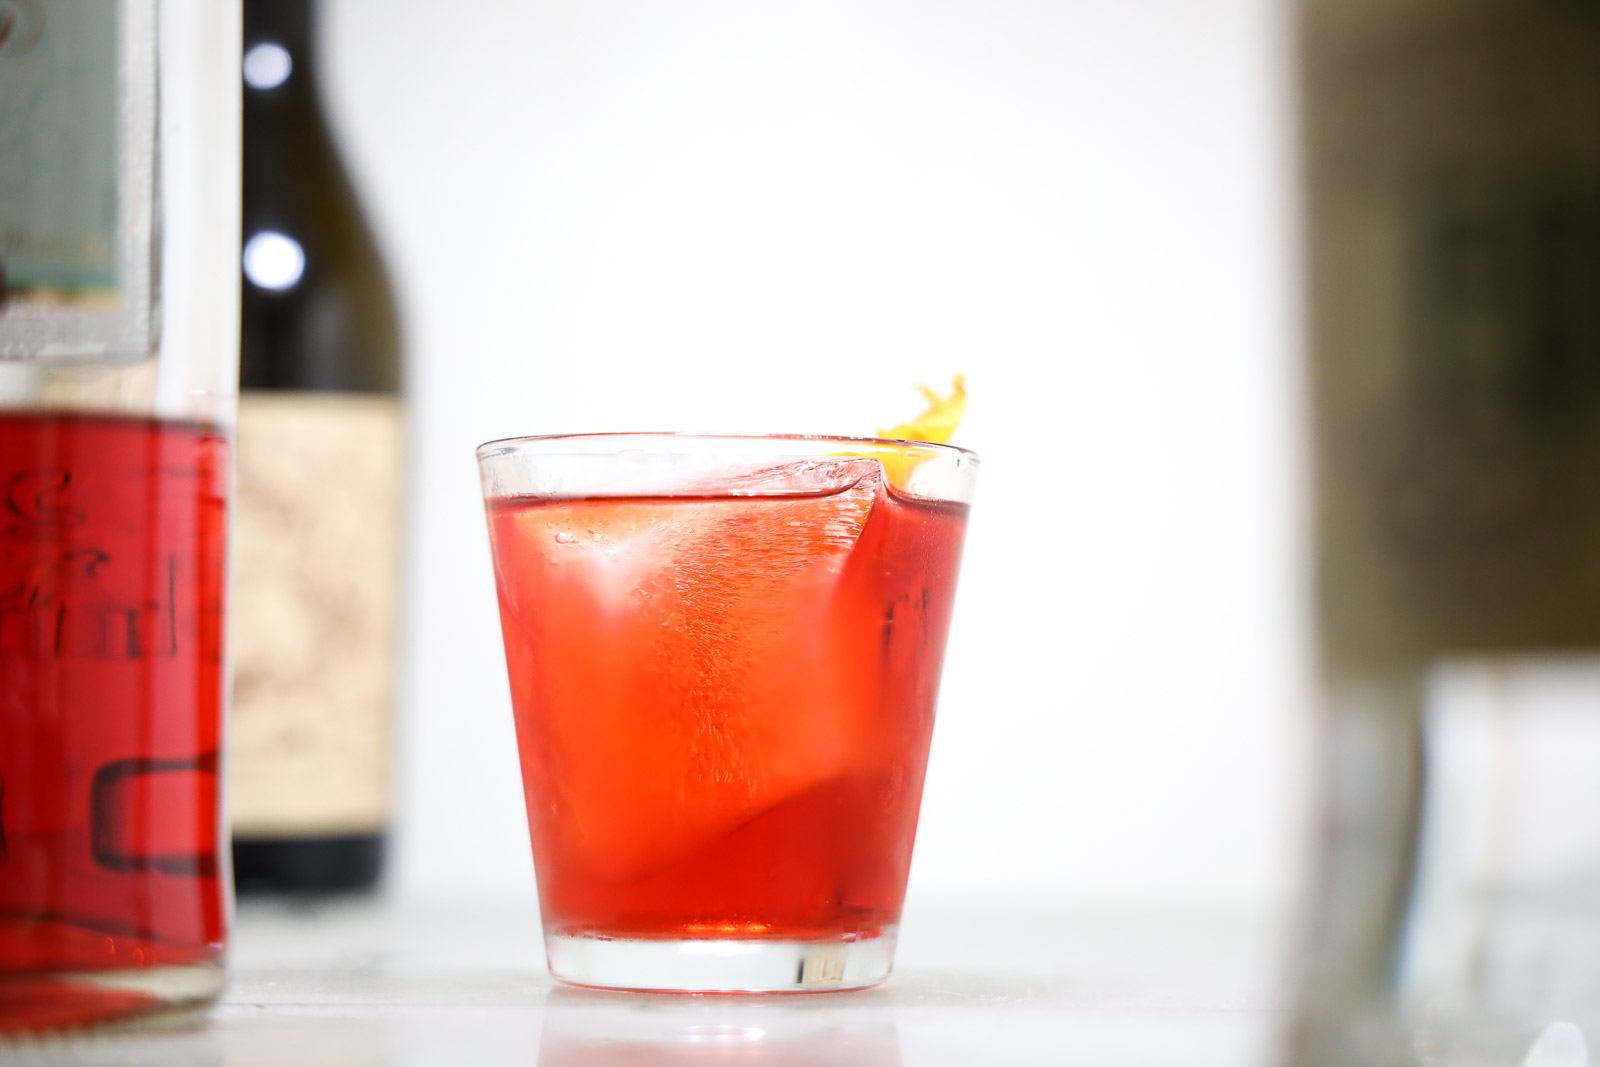 A negroni cocktail with Fords gin, Campari, and Carpano Antica.